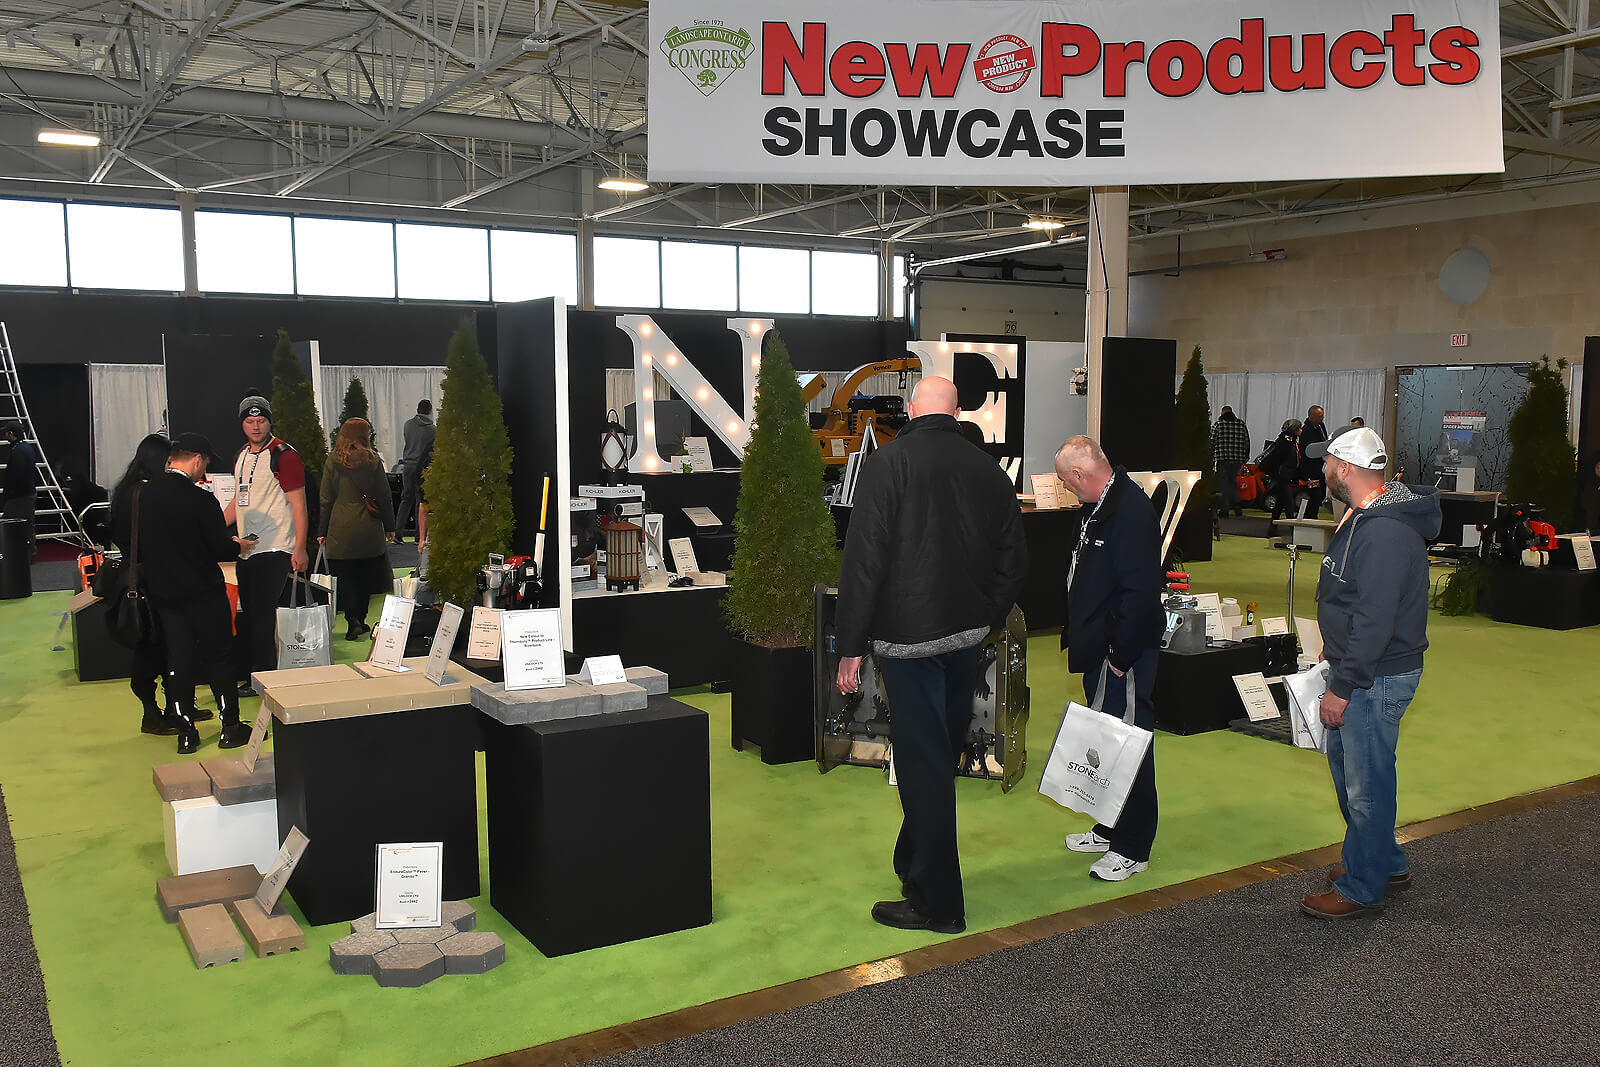 congress new products showcase